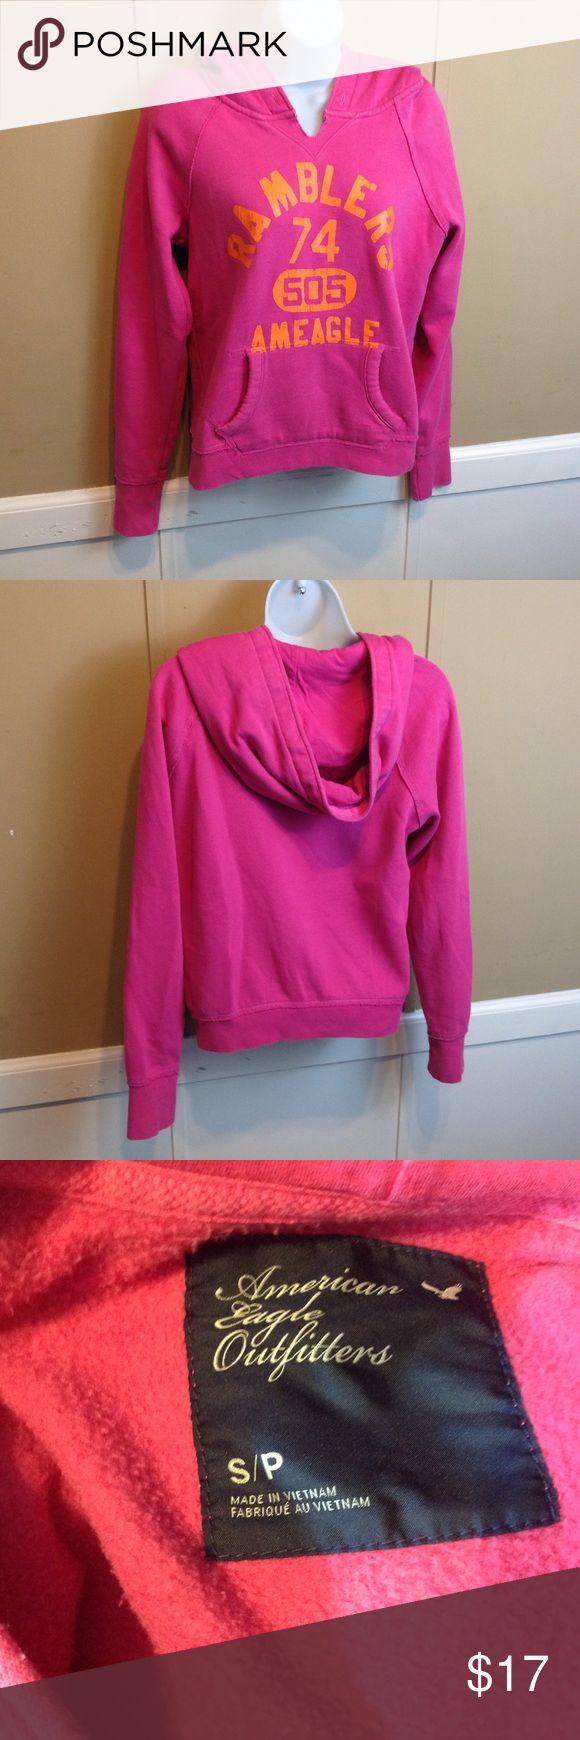 """American Eagle Hoodie Maker: American Eagle Outfitters ♥ Material: 80% Cotton 20% Polyester ♥ Color: Pink ♥ Measured Size: Pit to pit- 19"""" Pit to cuff- 19"""" Shoulder to waist- 21""""  ♥ Tag Size:  S ♥ Actual Size: S PLEASE CHECK YOUR ACTUAL MEASUREMENTS TO MAKE SURE IT IS THE RIGHT SIZE! THANKS! ♥ Condition: Great Used Condition  ♥ Item #: (office use only) F  Follow us on Instagram and facebook for coupon codes!  INSTAGRAM-thehausofvintage1984 Facebook- intergalactic haus of vintage 1984 or…"""